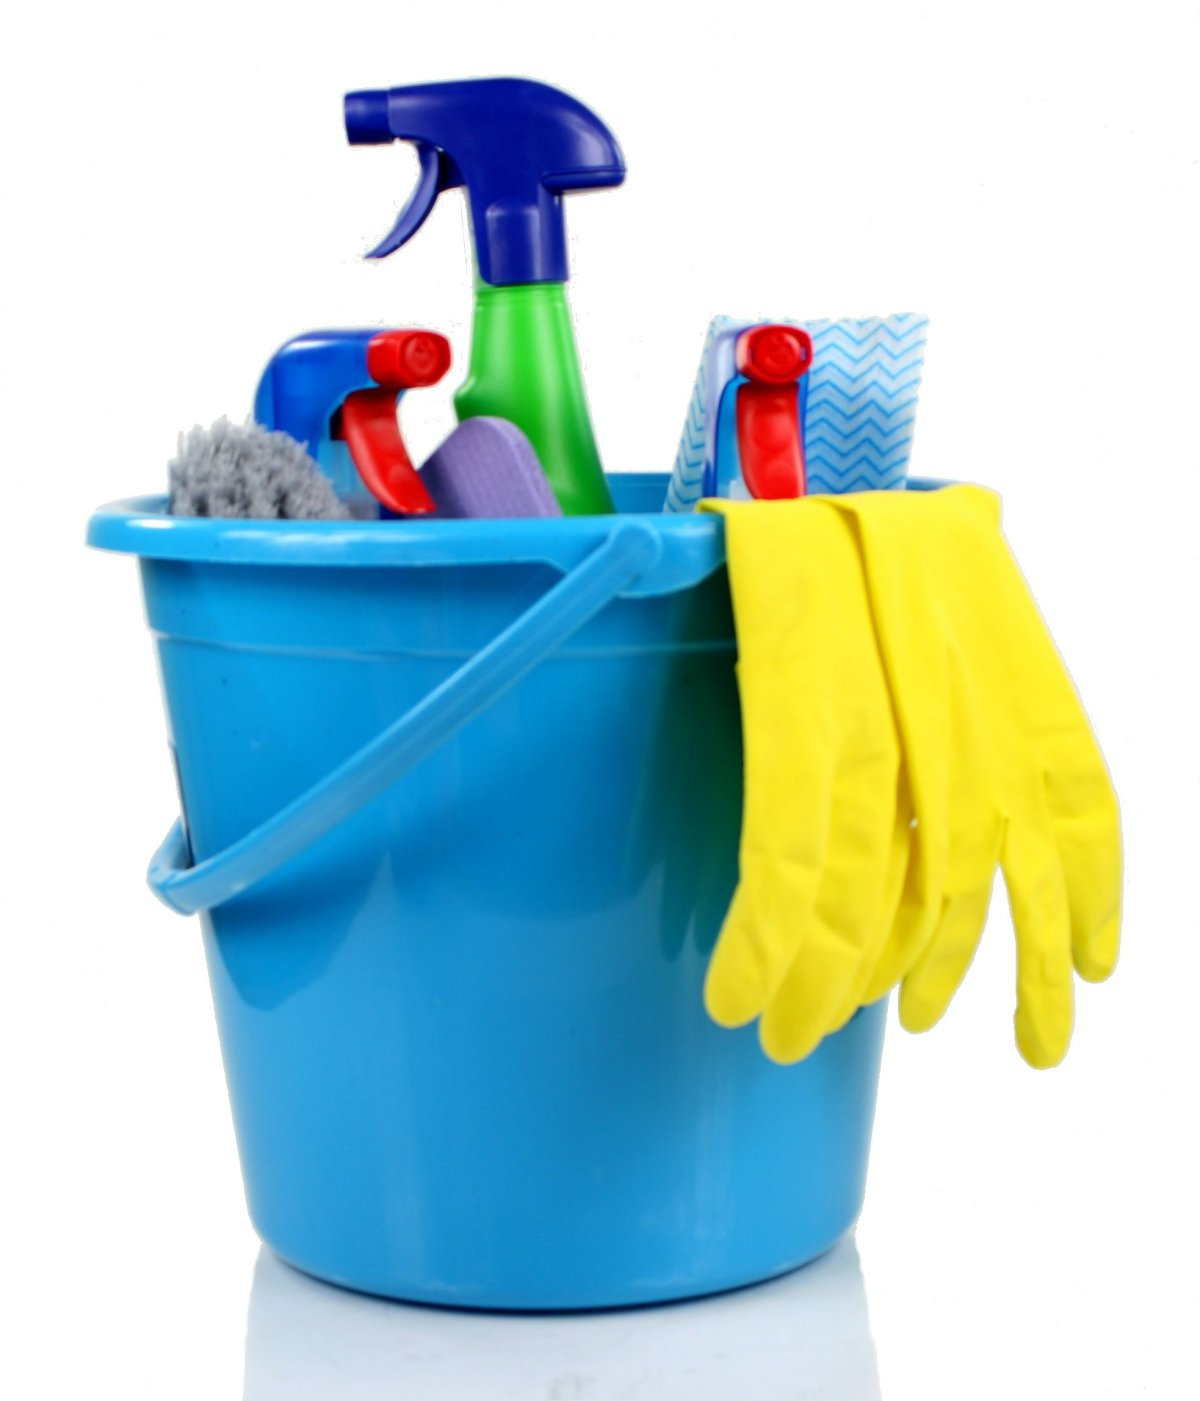 Blue bucket of cleaning supplies.